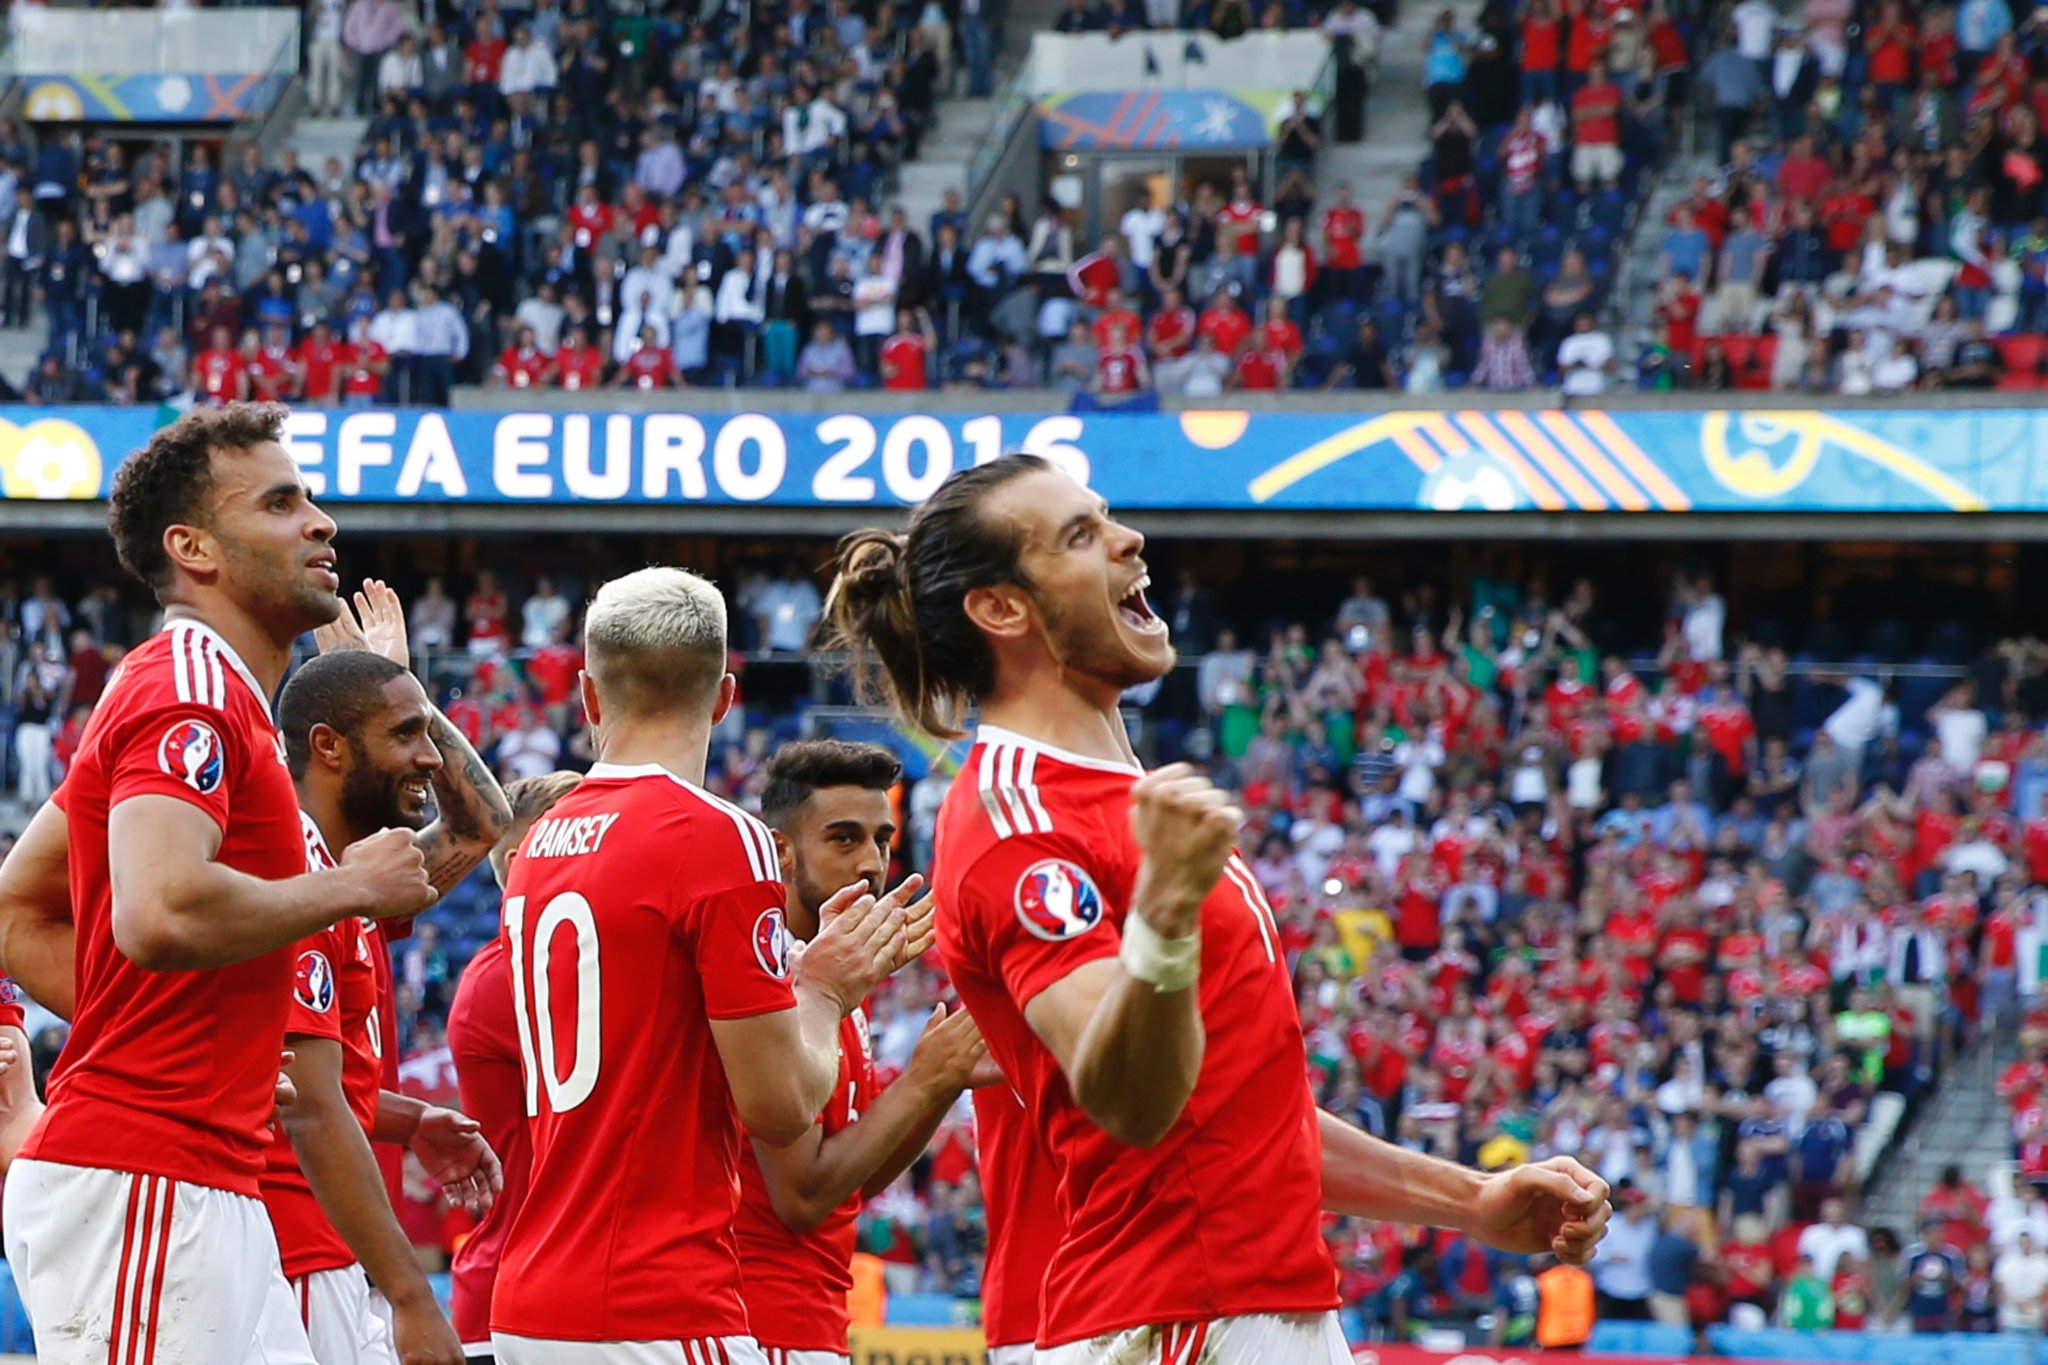 Wales Edge Northern Ireland To Advance Into Quarter-Finals